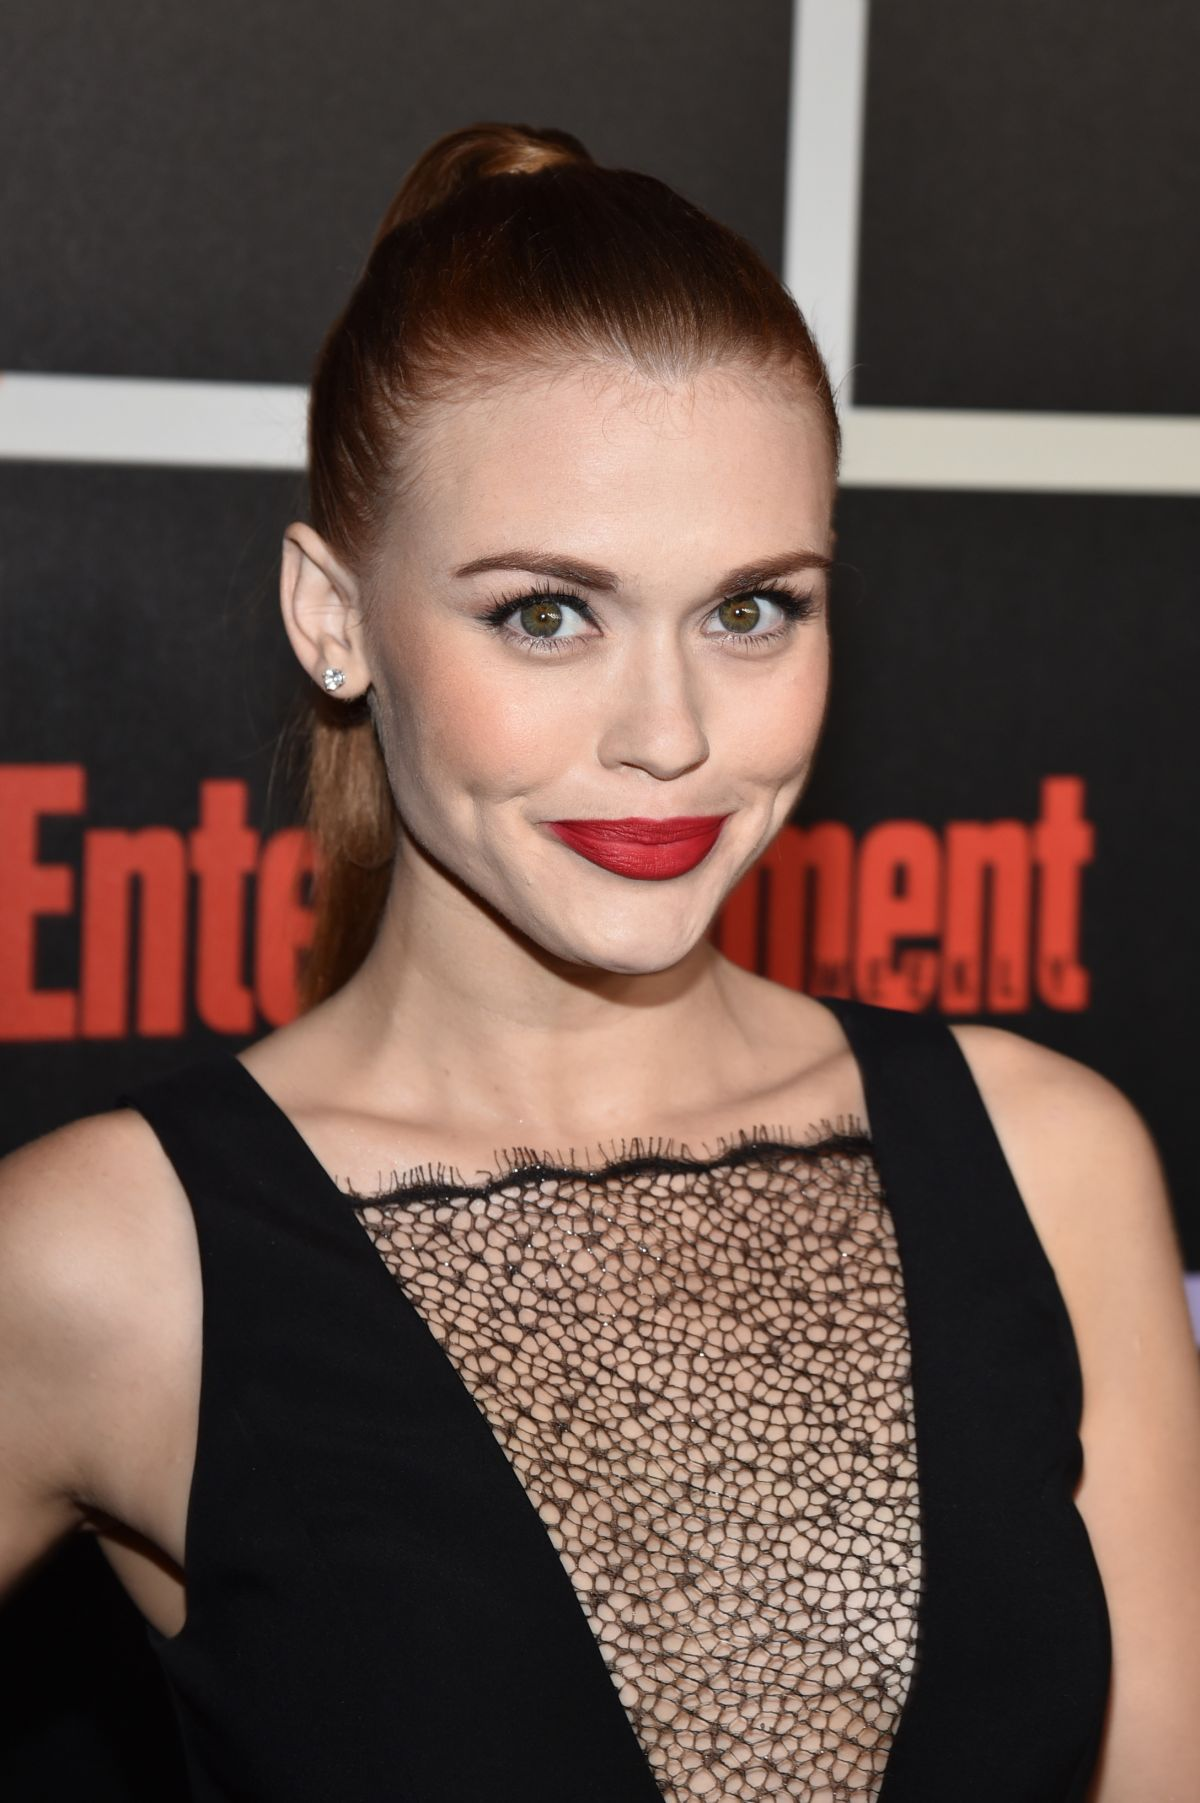 HOLLAND RODEN at Entertainment Weekly's Comic-con Celebration